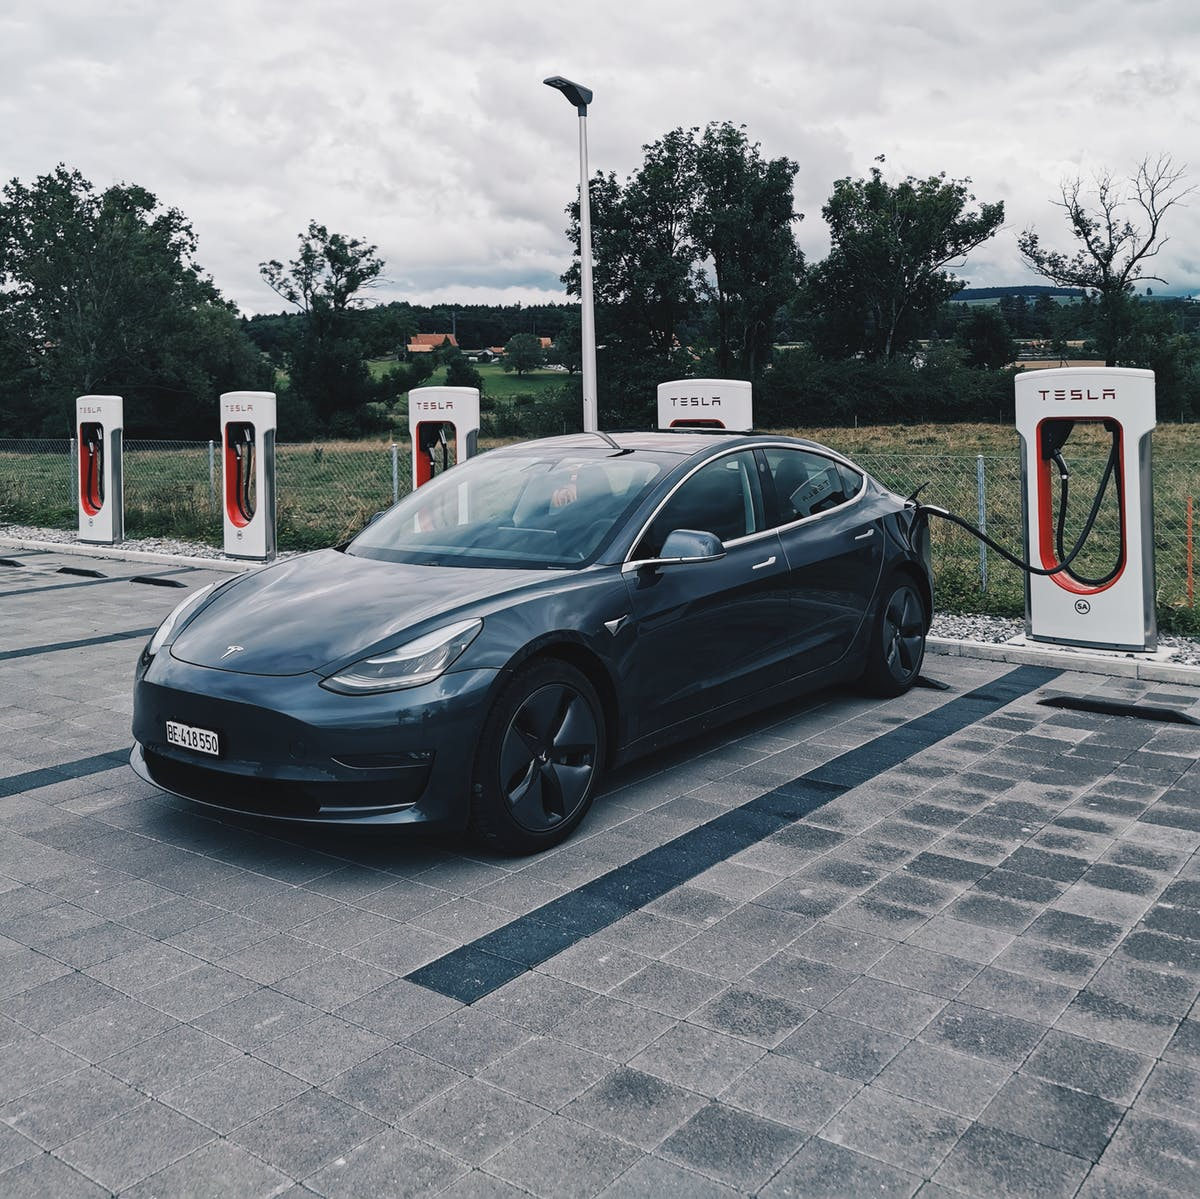 Elon Musk suggests the Tesla of the future could ditch grid power